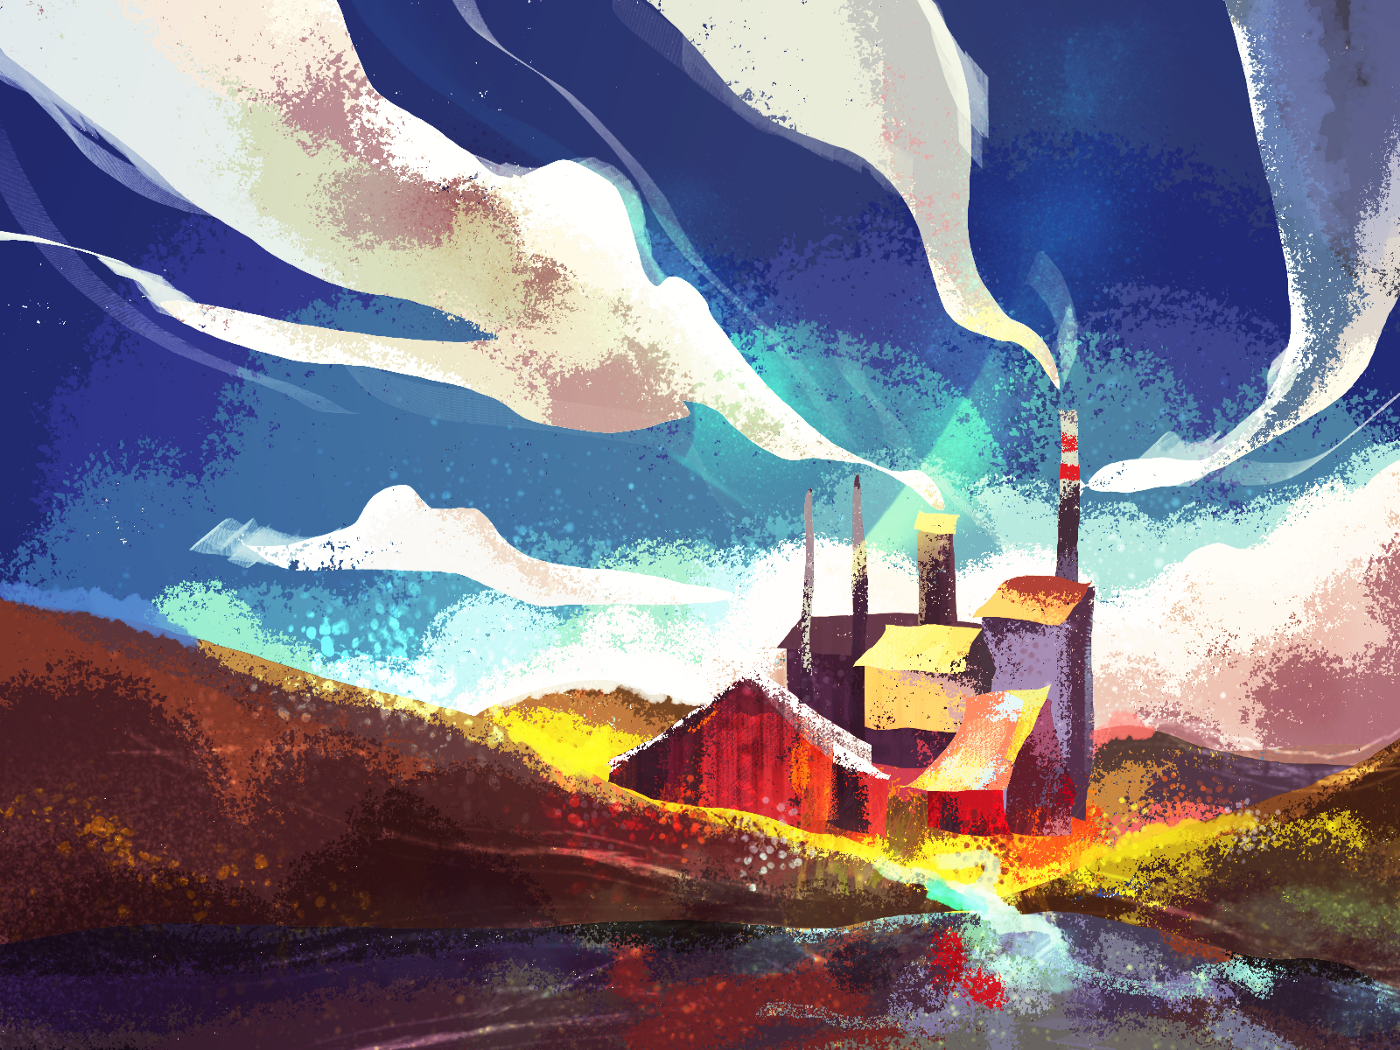 2019uiux-Scenery Illustration.png